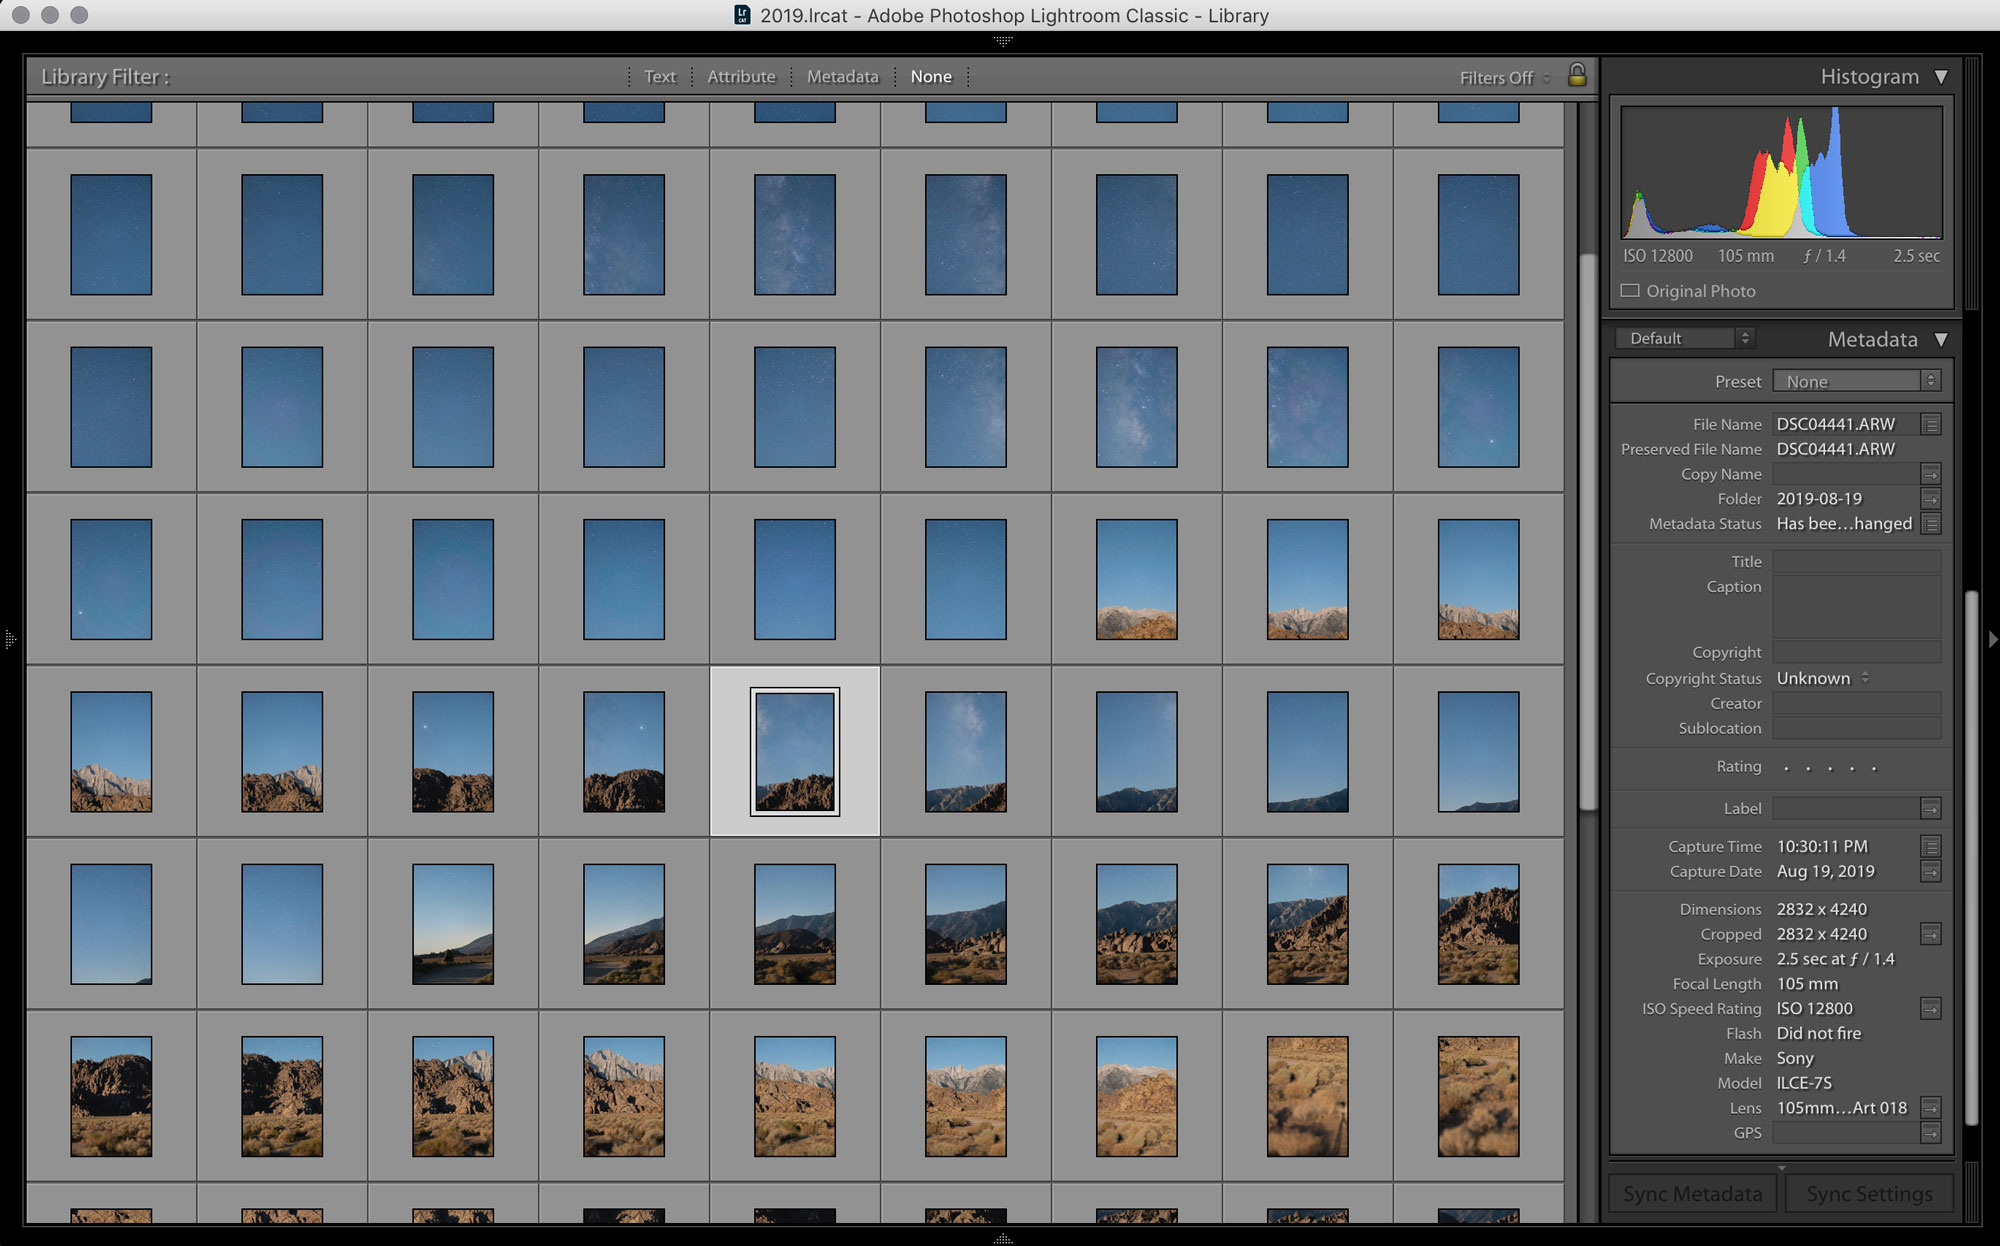 Adobe Lightroom Grid View